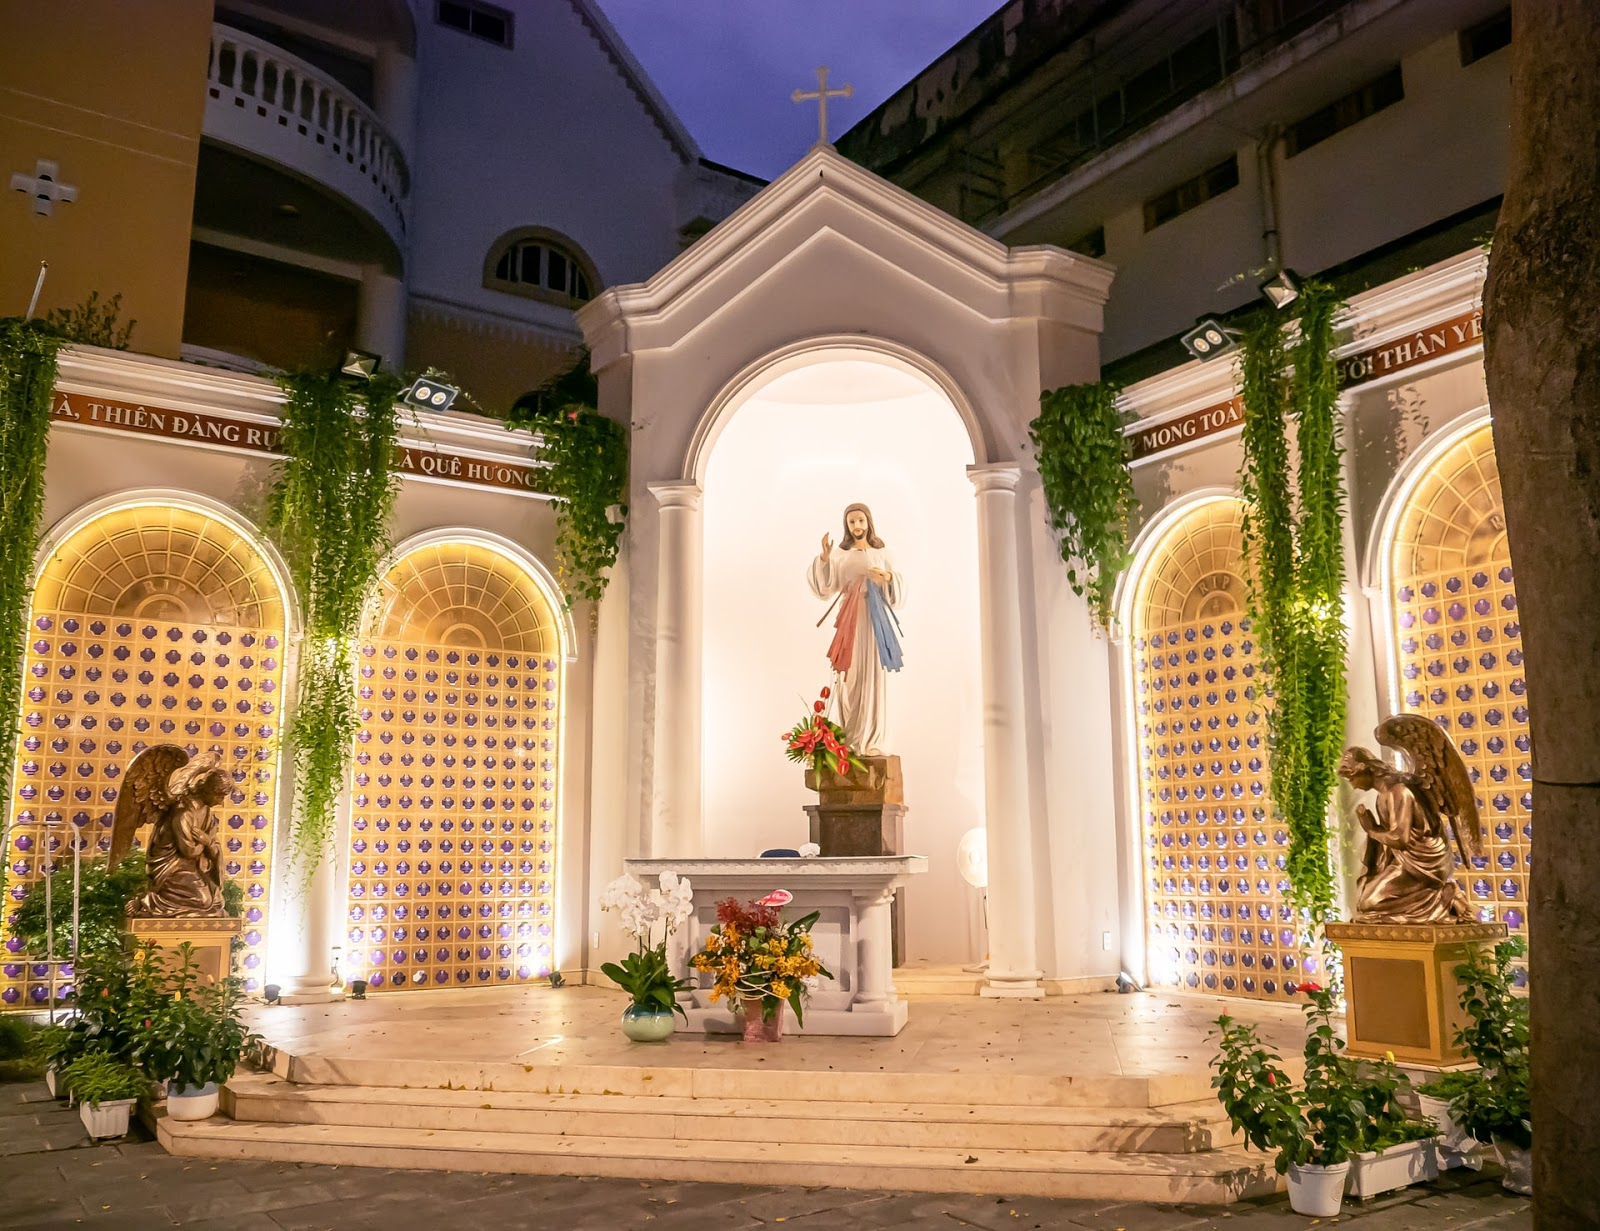 outdoor alter with a statue of Jesus